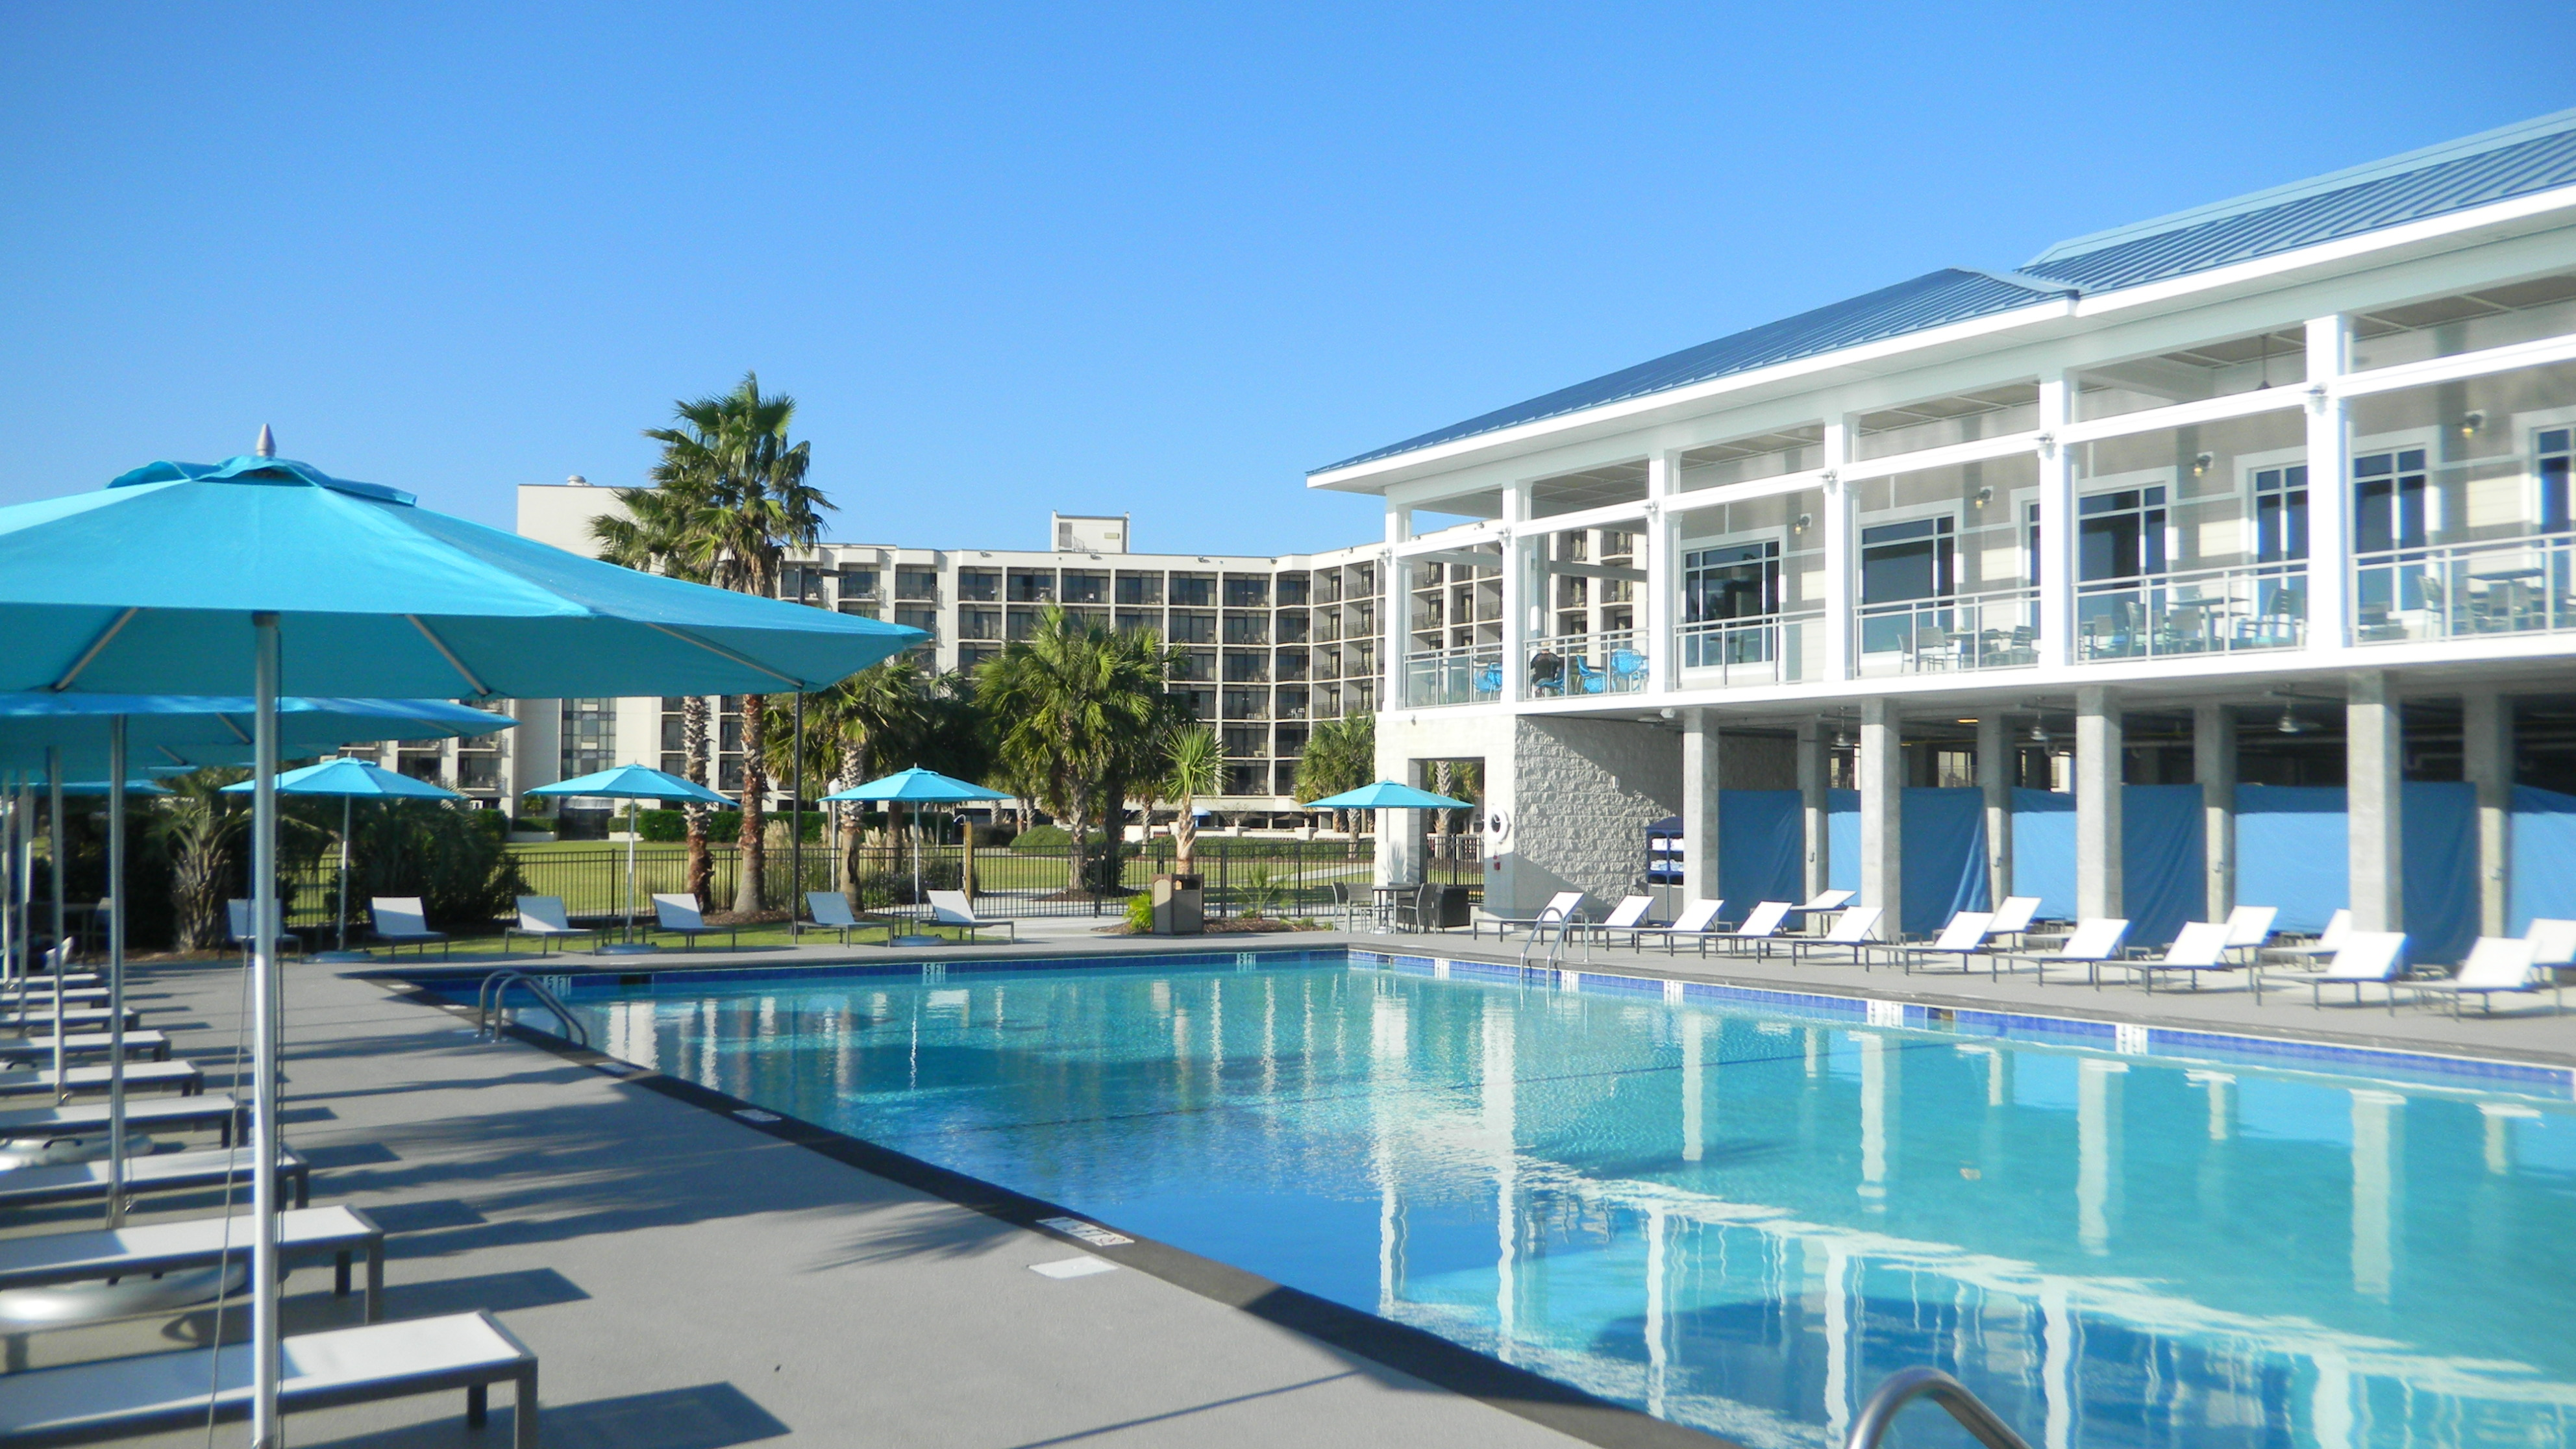 Doubleltree Resort S Myrtle Beach Annual Conference